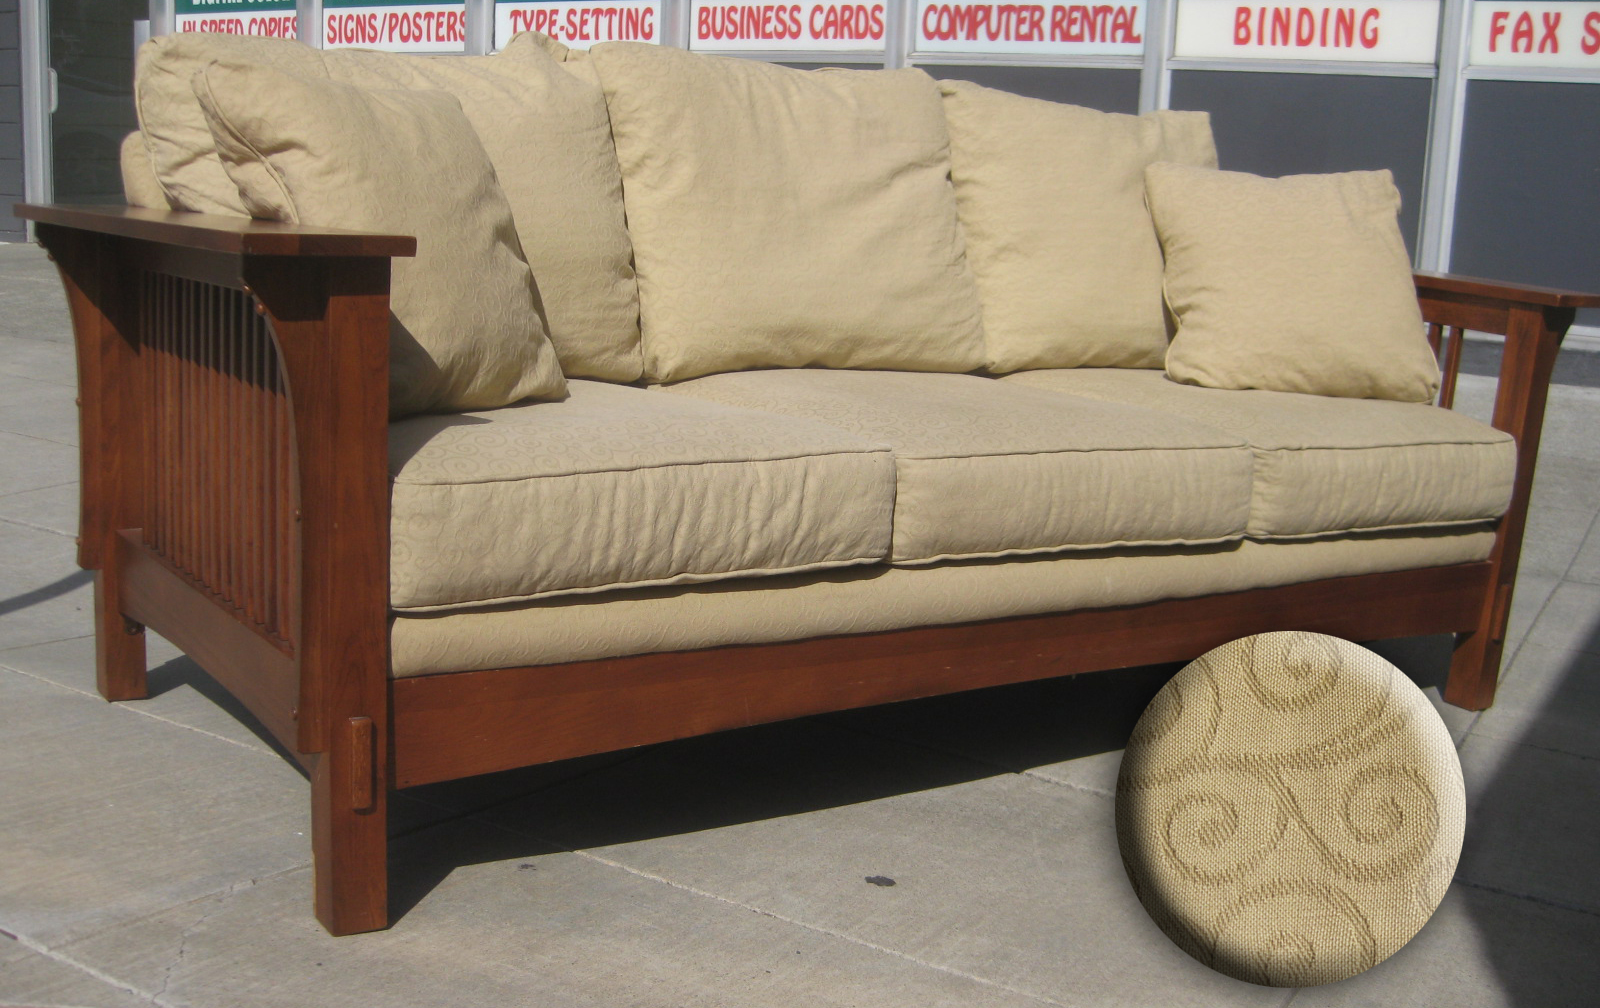 UHURU FURNITURE & COLLECTIBLES: SOLD - Mission-style Sofa - $290